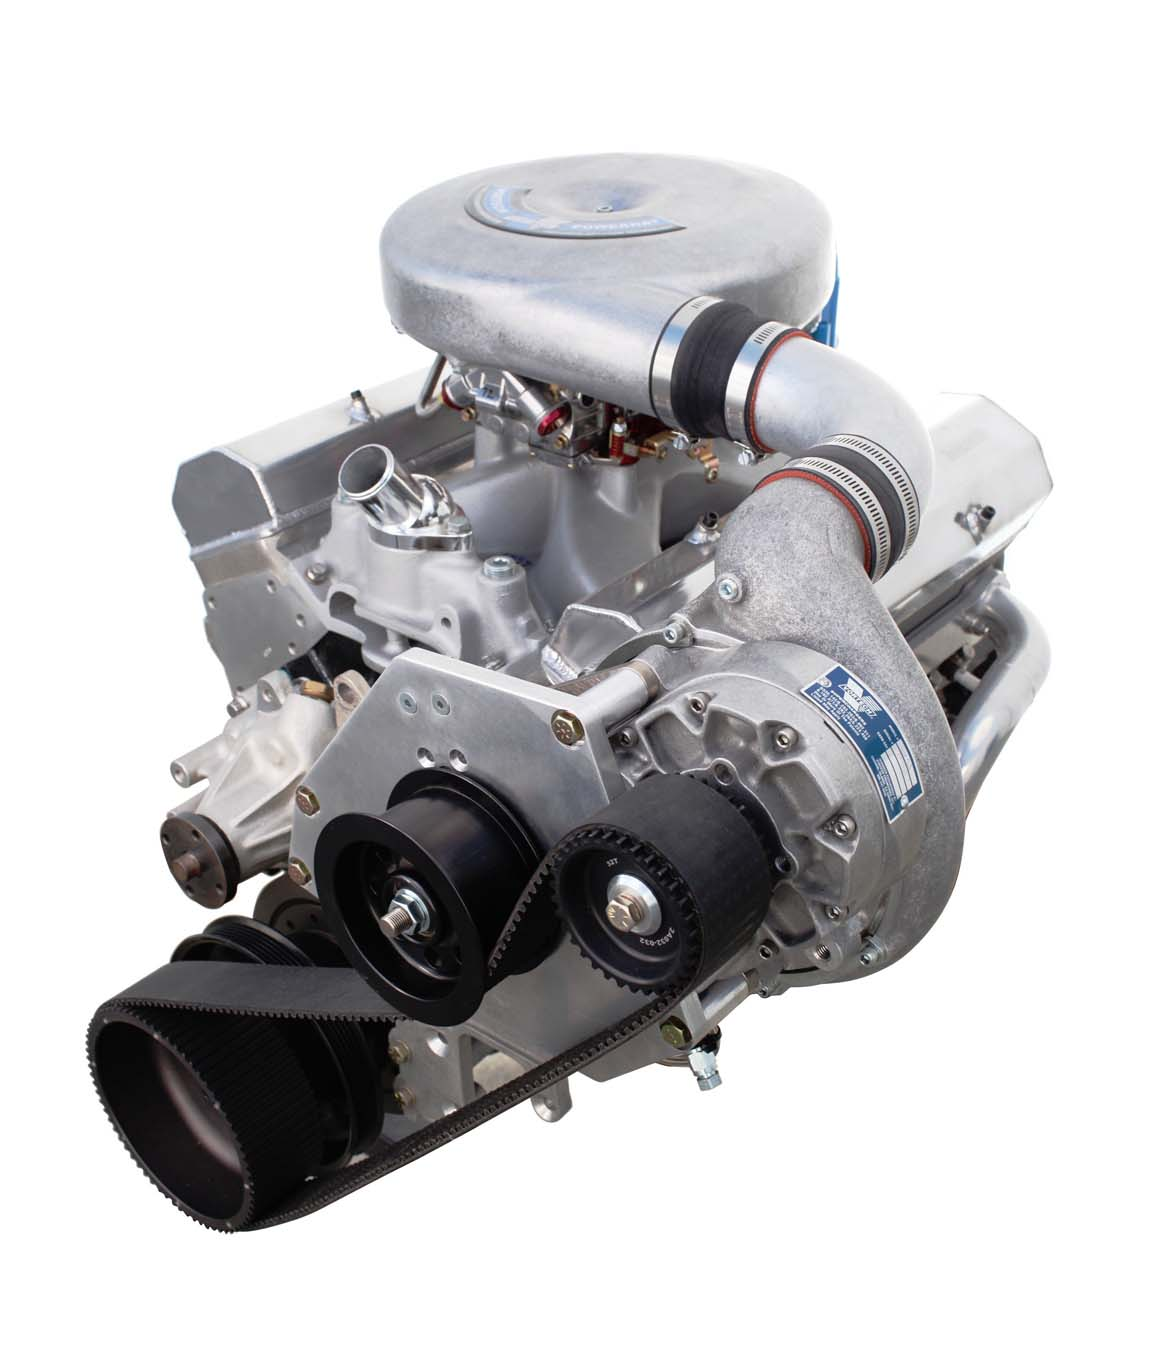 All Your Centrifugal Supercharger Questions Answered - Hot Rod Network